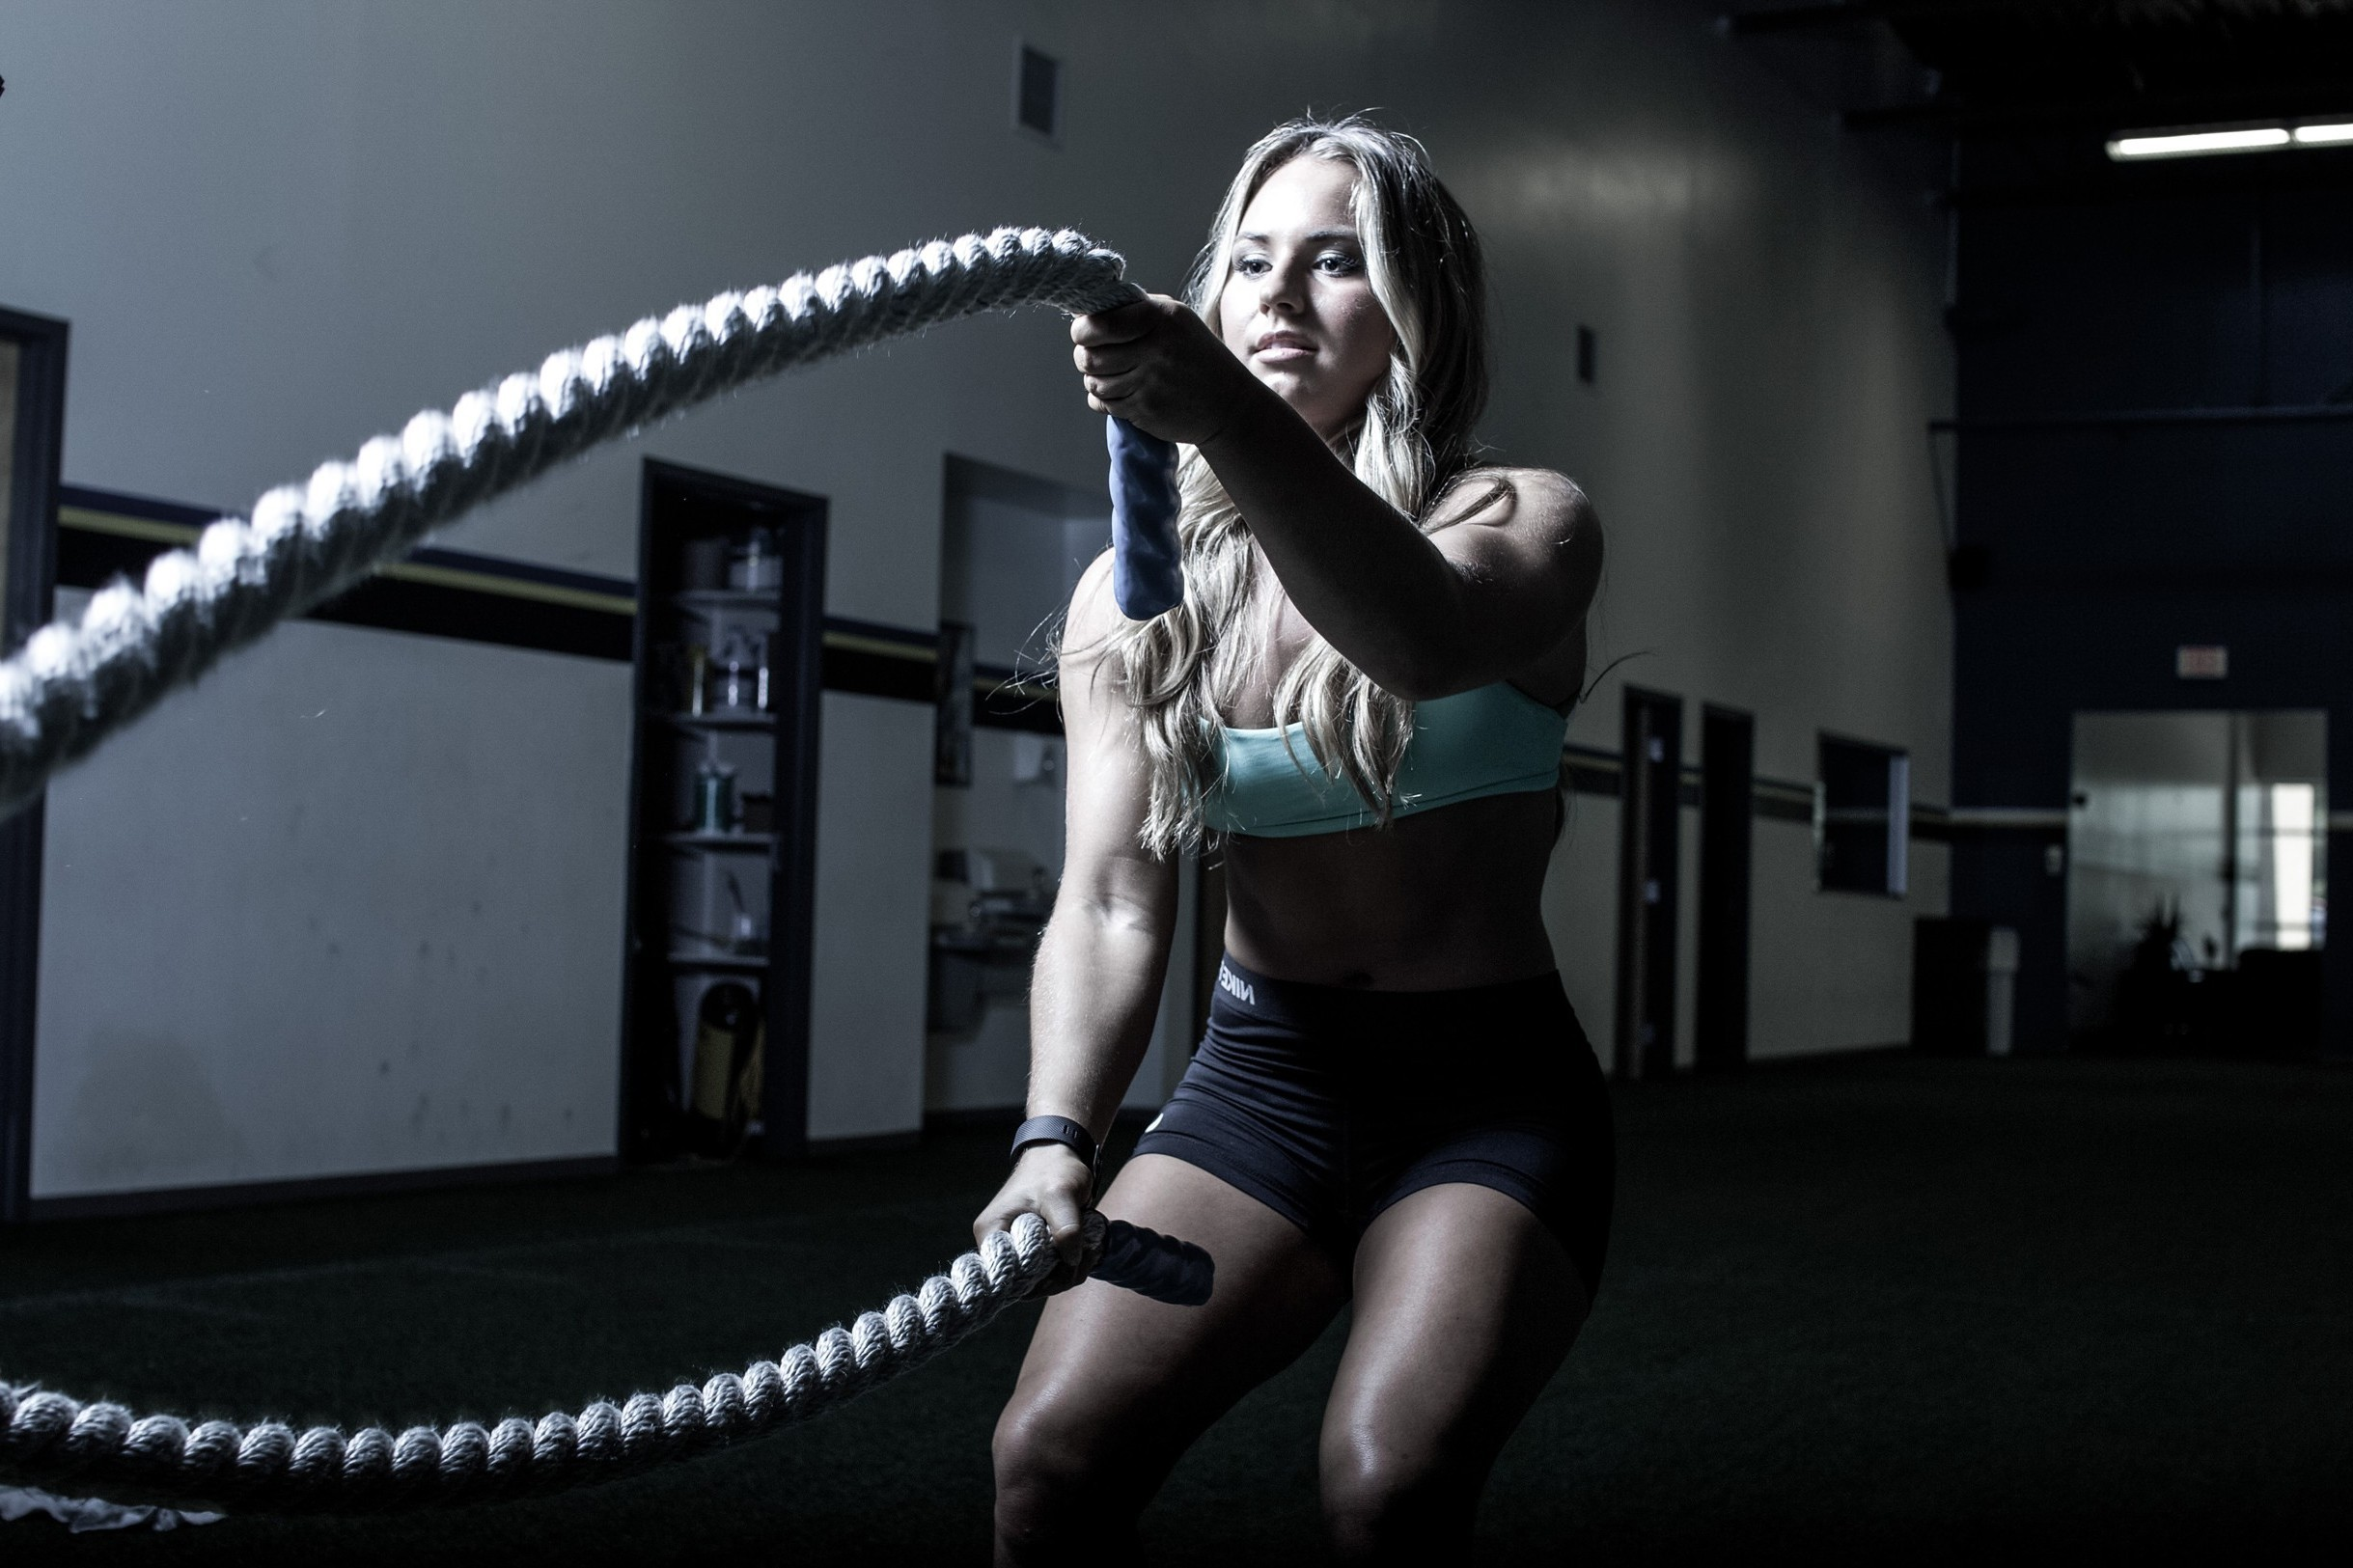 311701-fitness_model-ropes-working_out